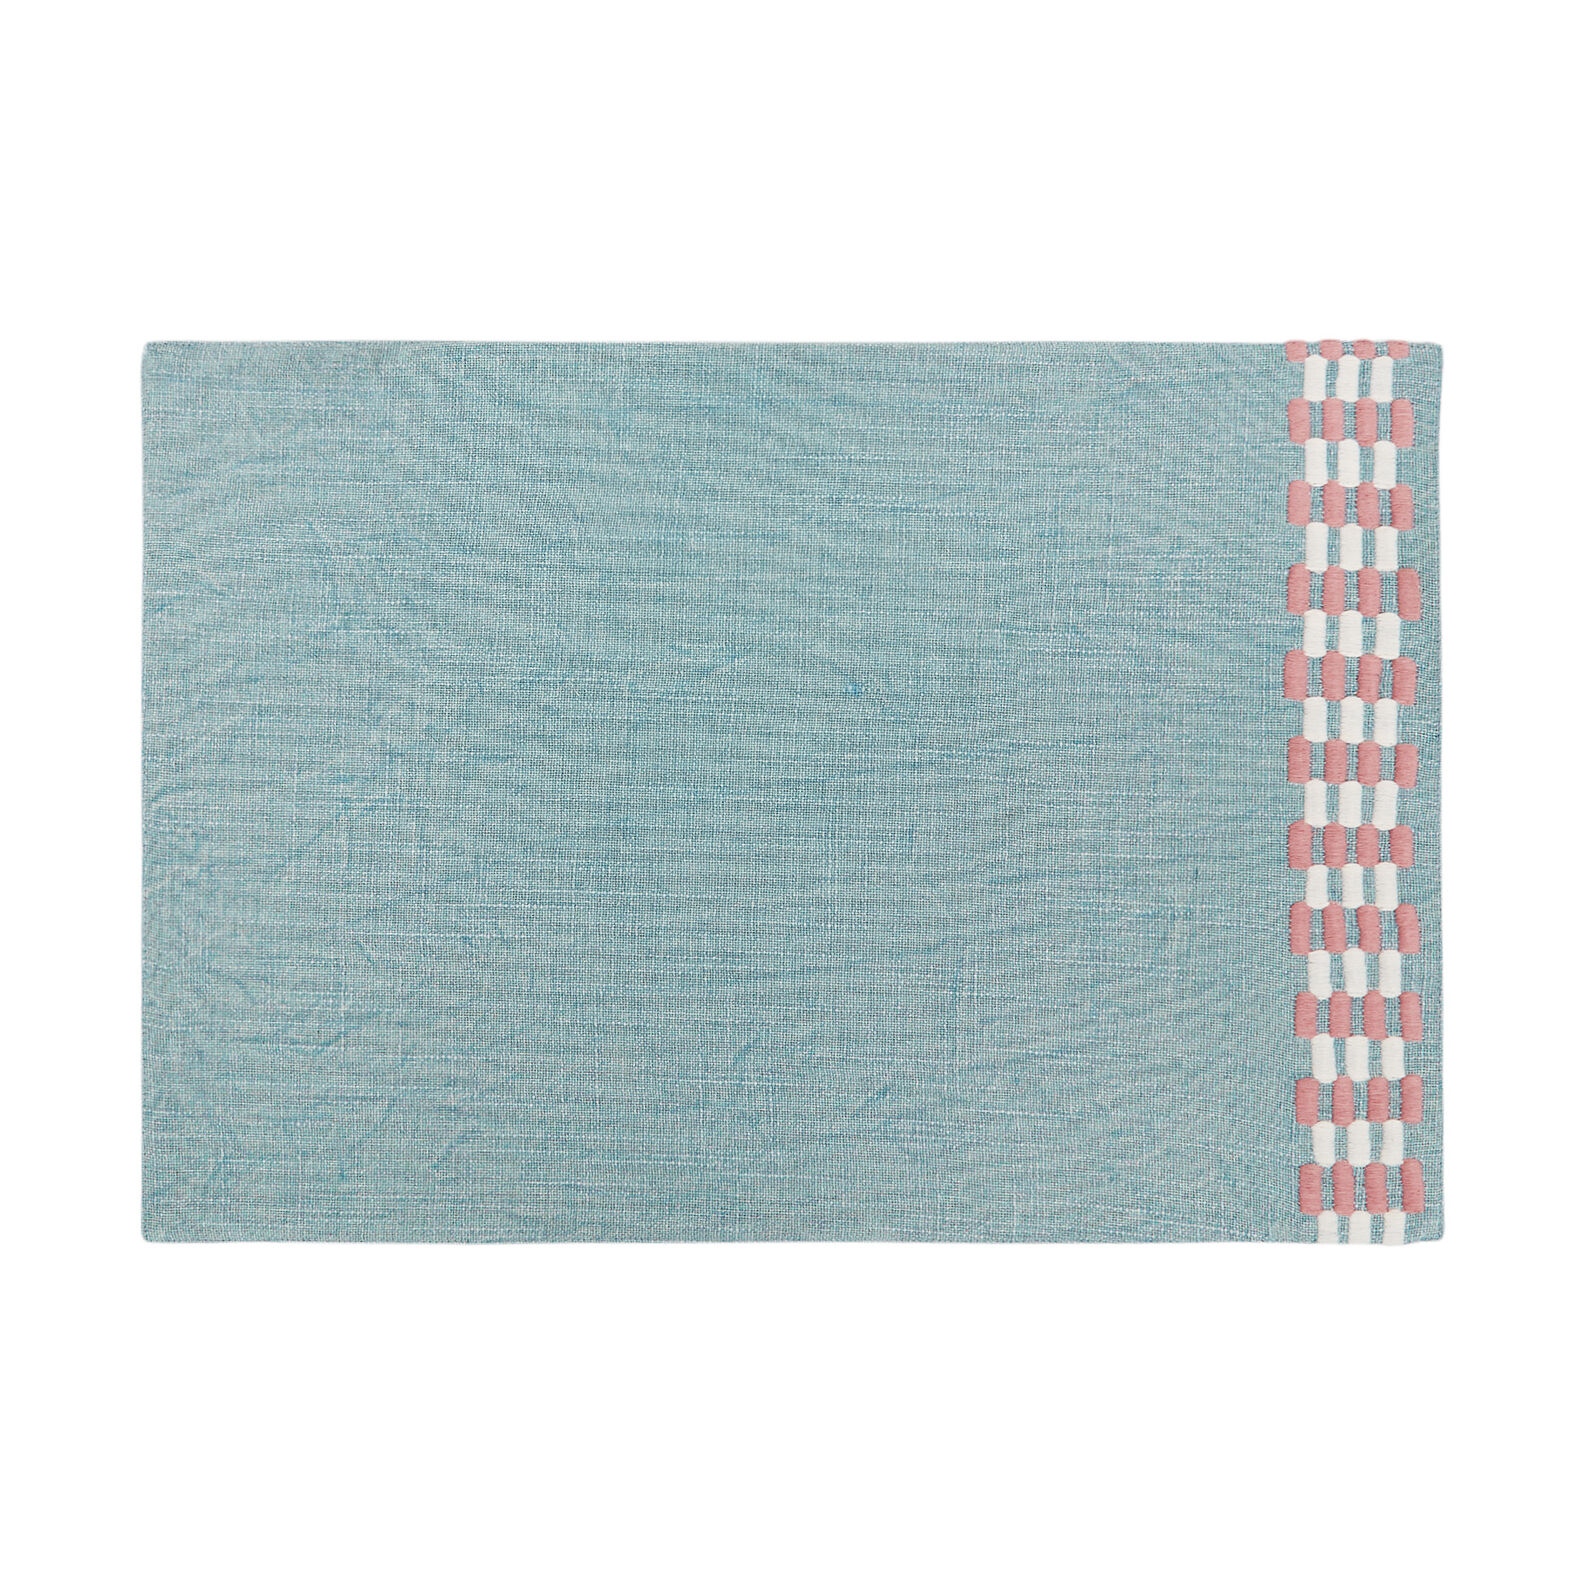 Stonewashed table mat in 100% cotton